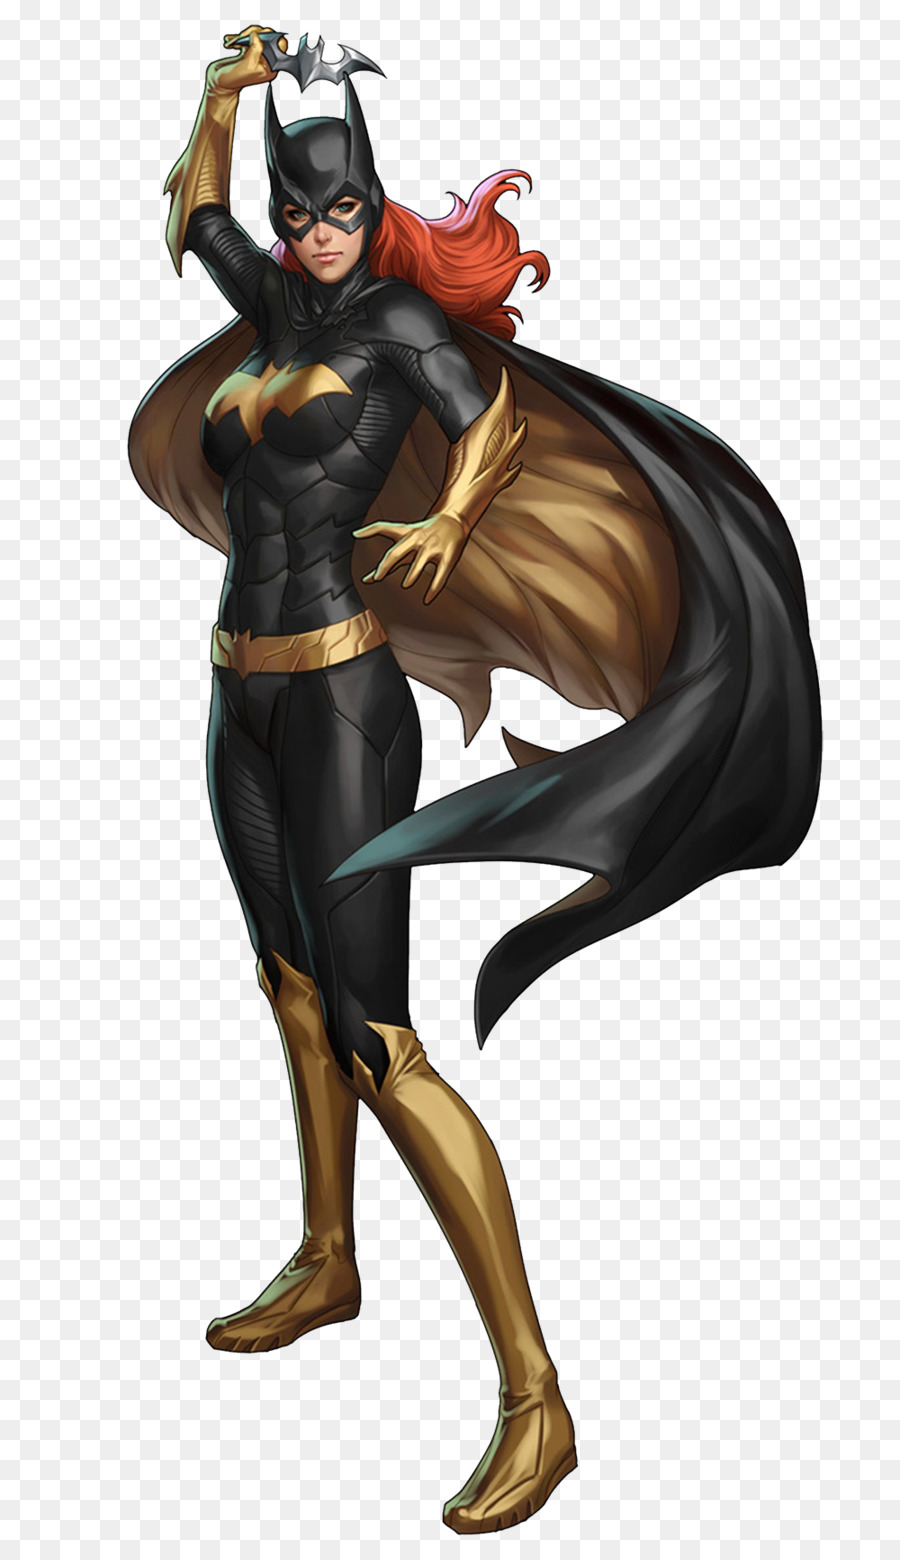 900x1560 Batgirl Barbara Gordon Batman Batwoman